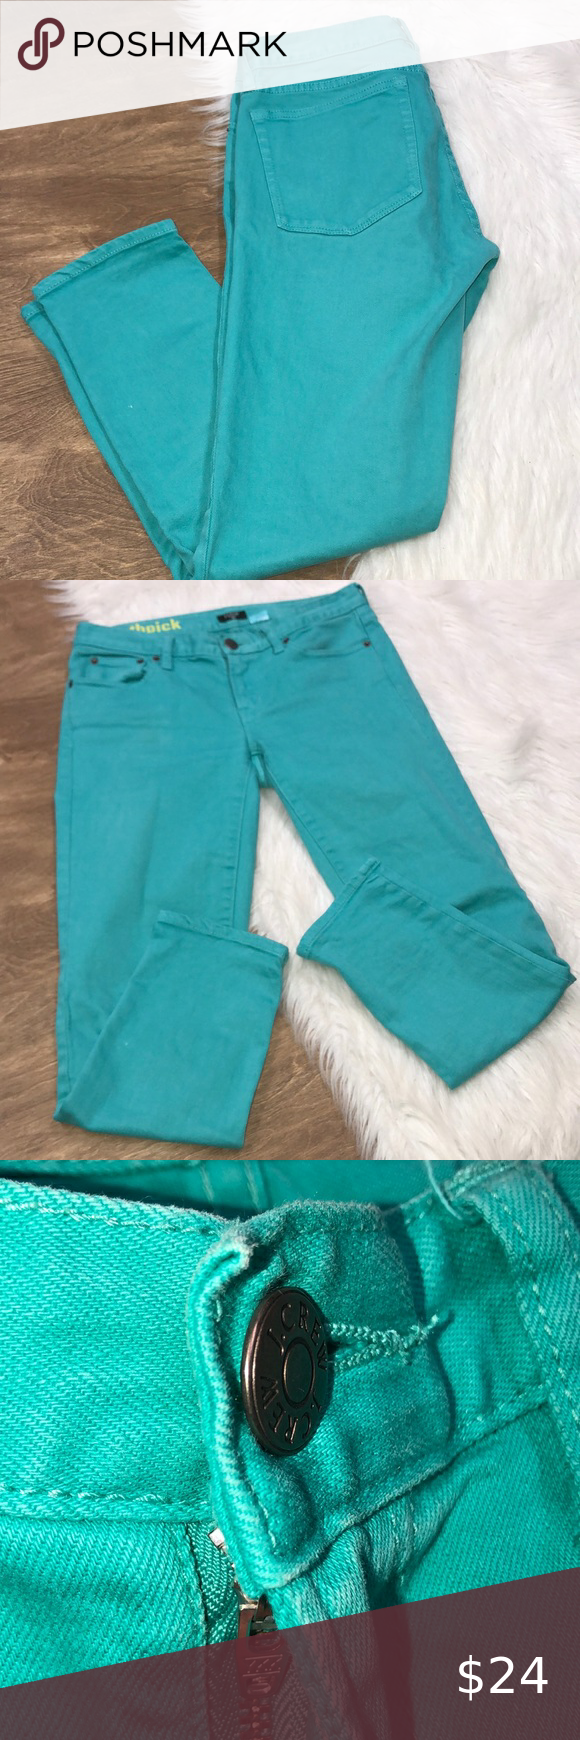 J Crew stretch toothpick size 27 turquoise jeans J